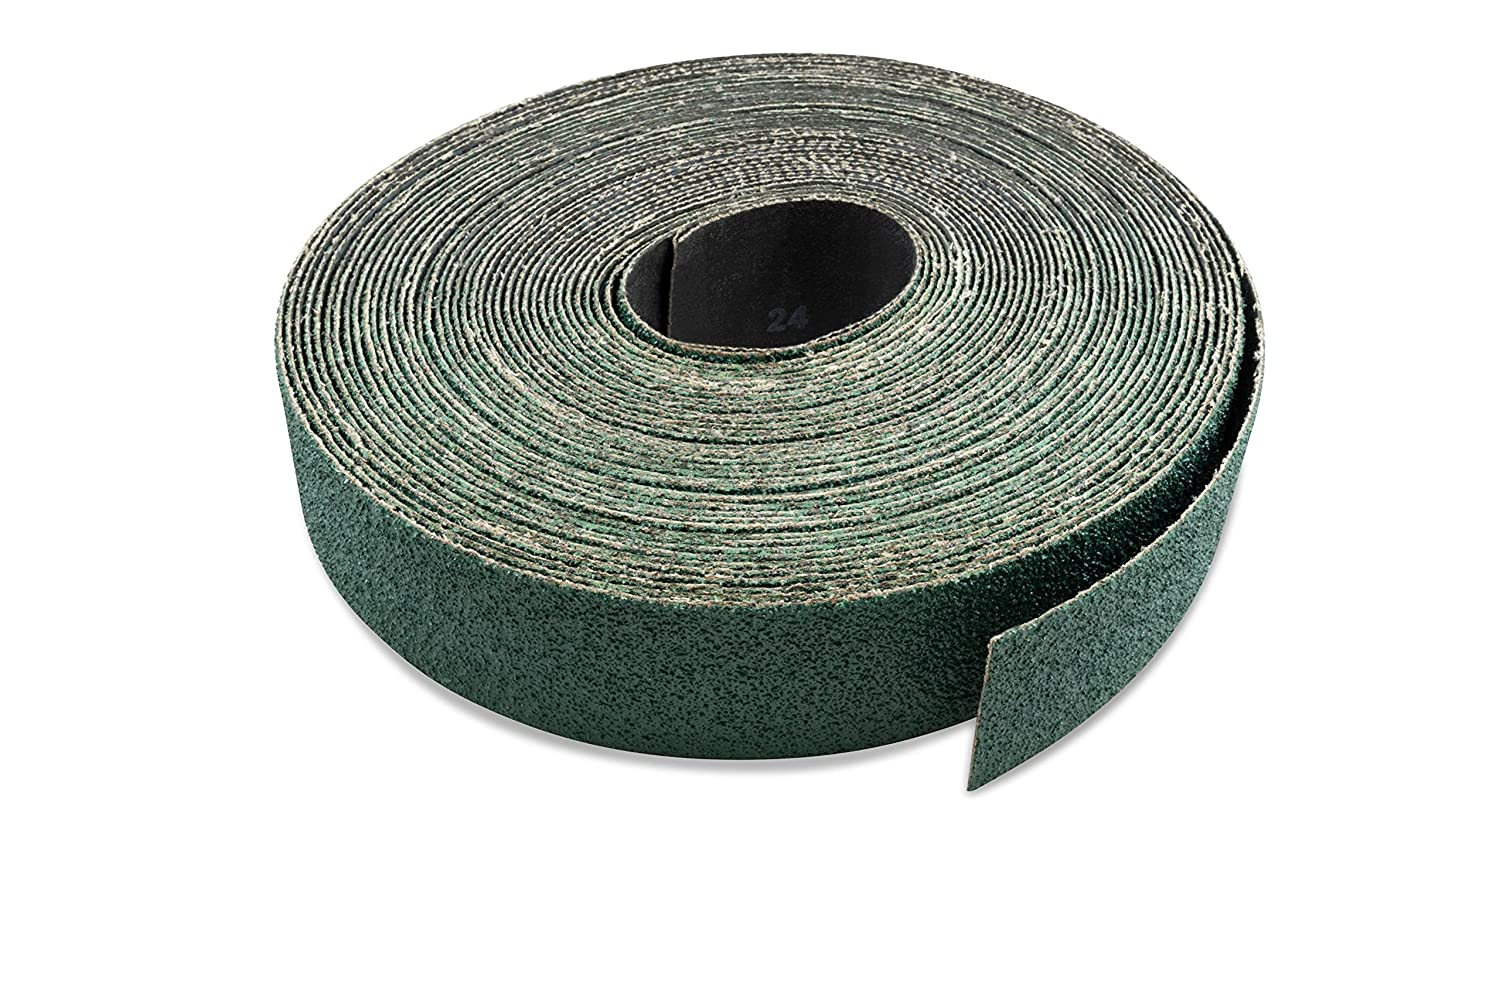 3 inch X 70 FT 36 Grit Zirconia Woodworking Drum Sander Roll Red Label Abrasives